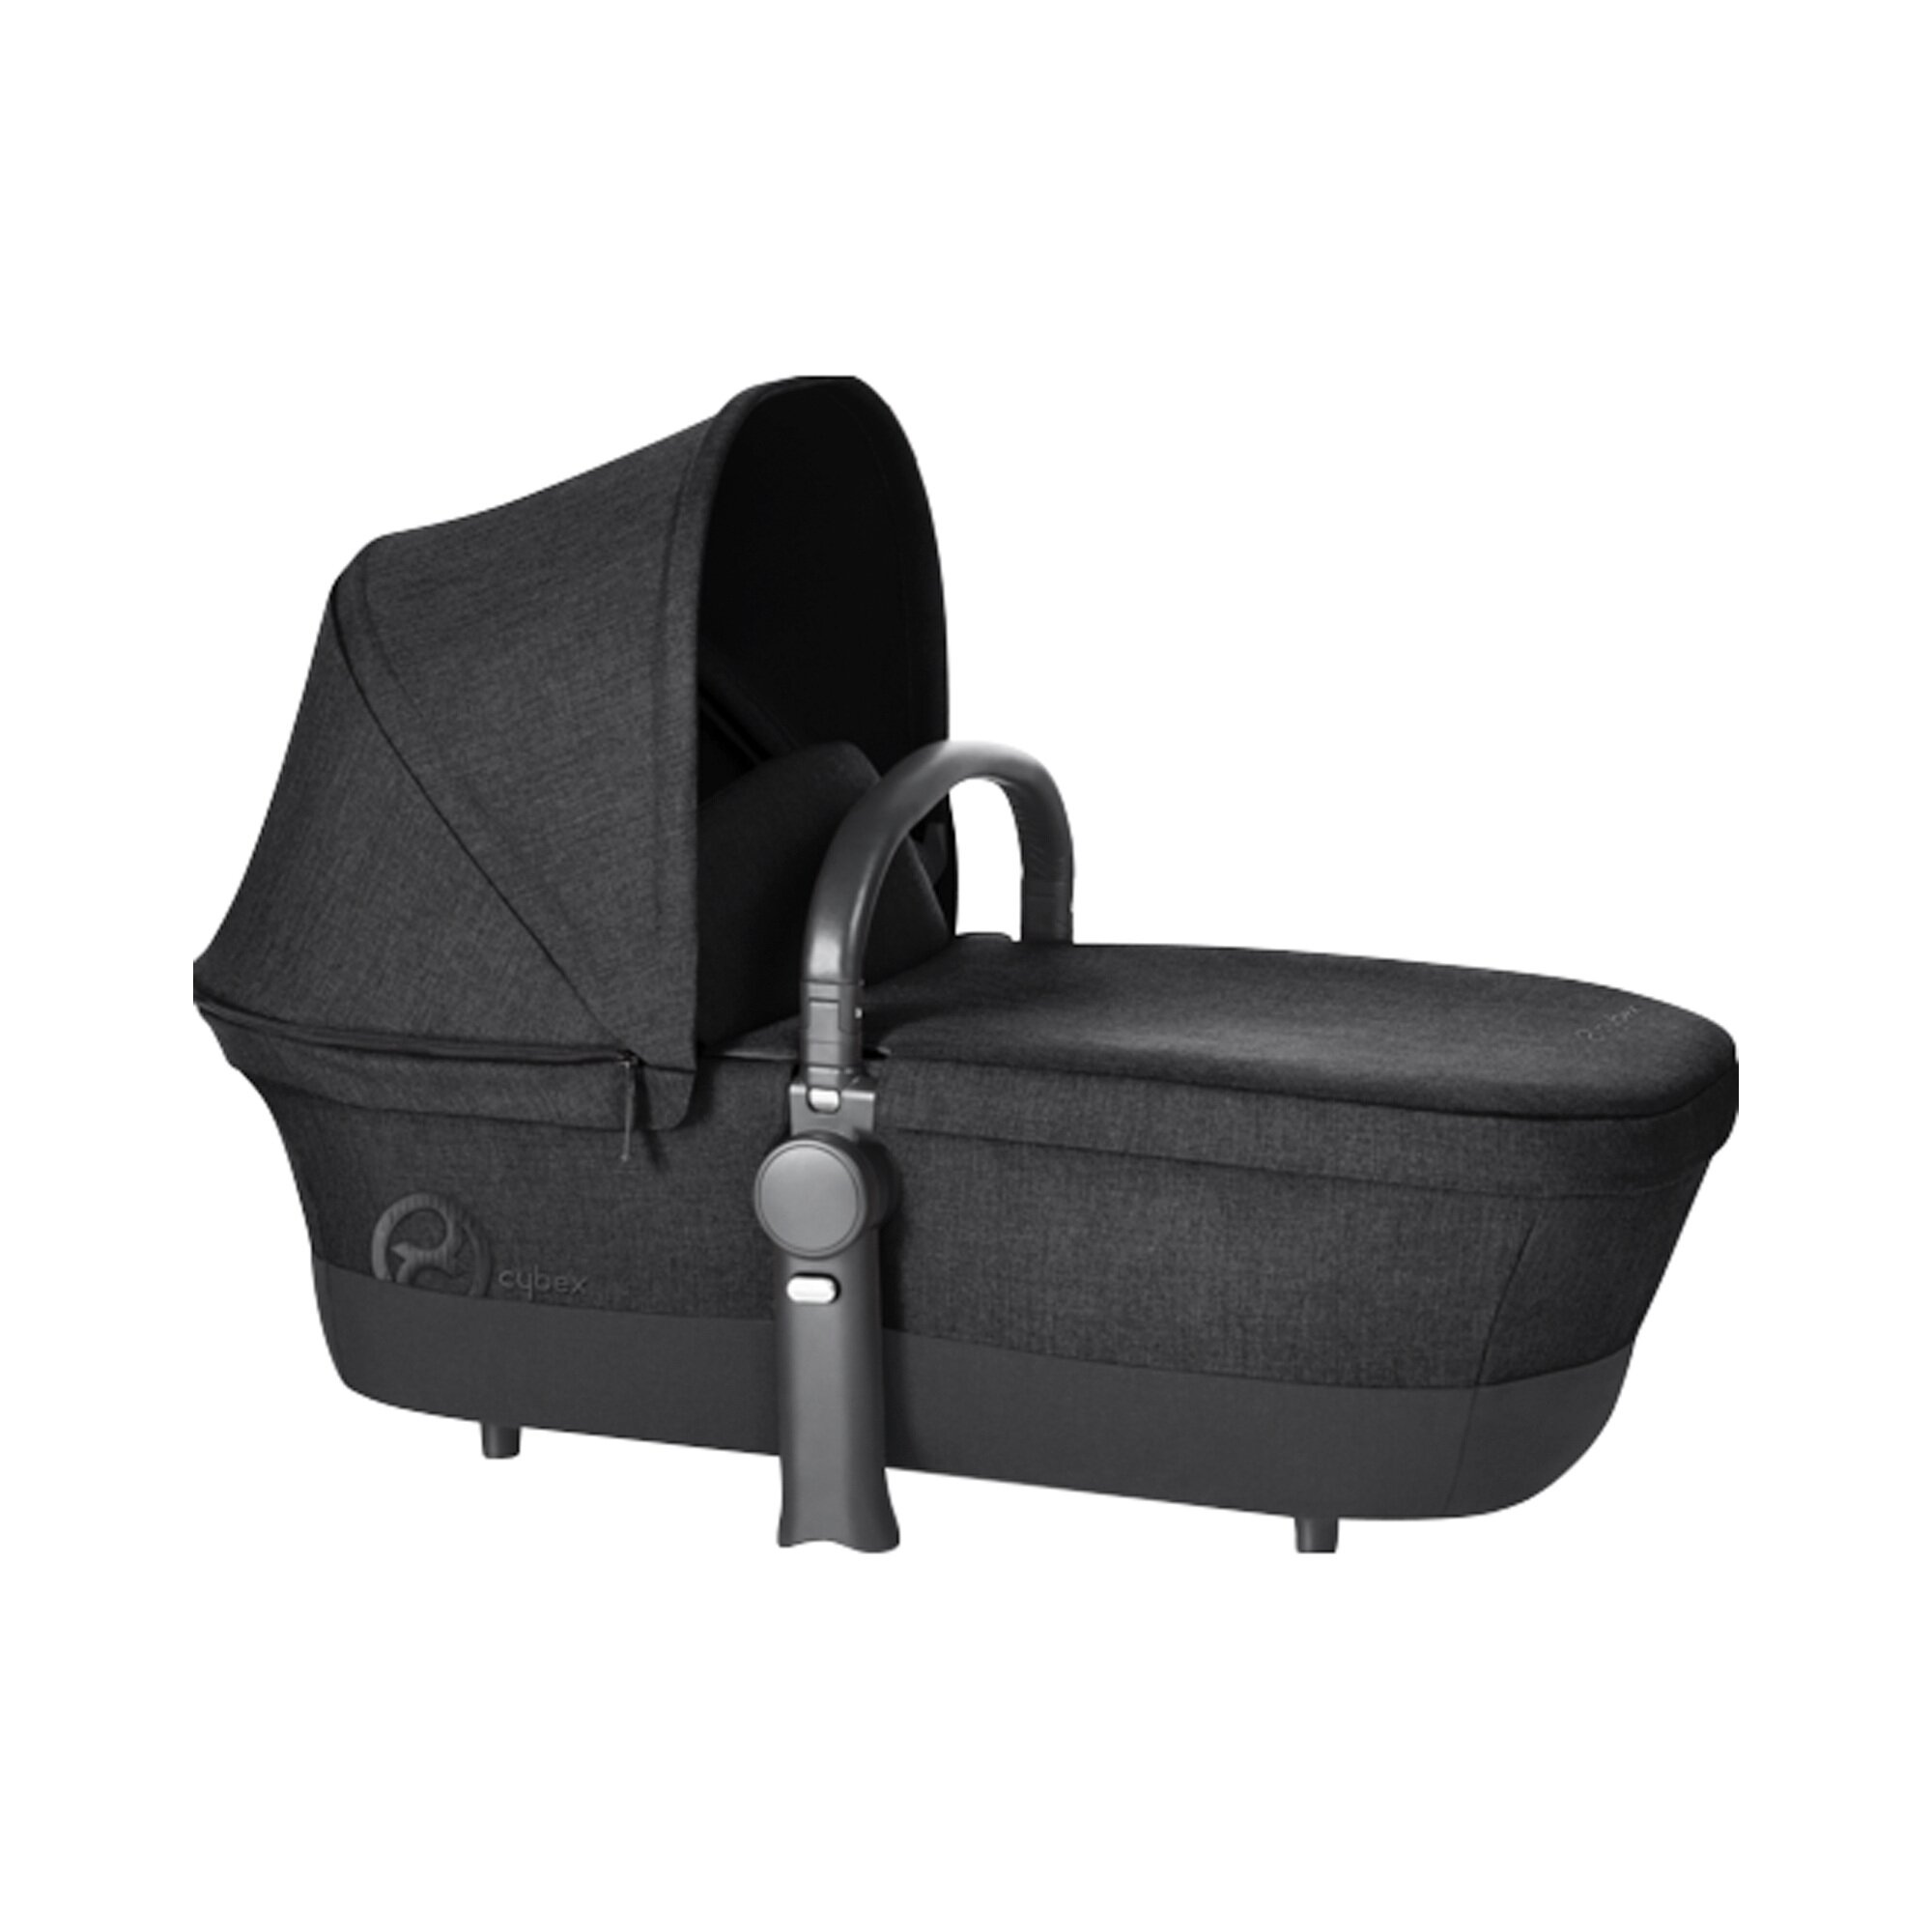 platinum-priam-carrycot-design-2017-schwarz